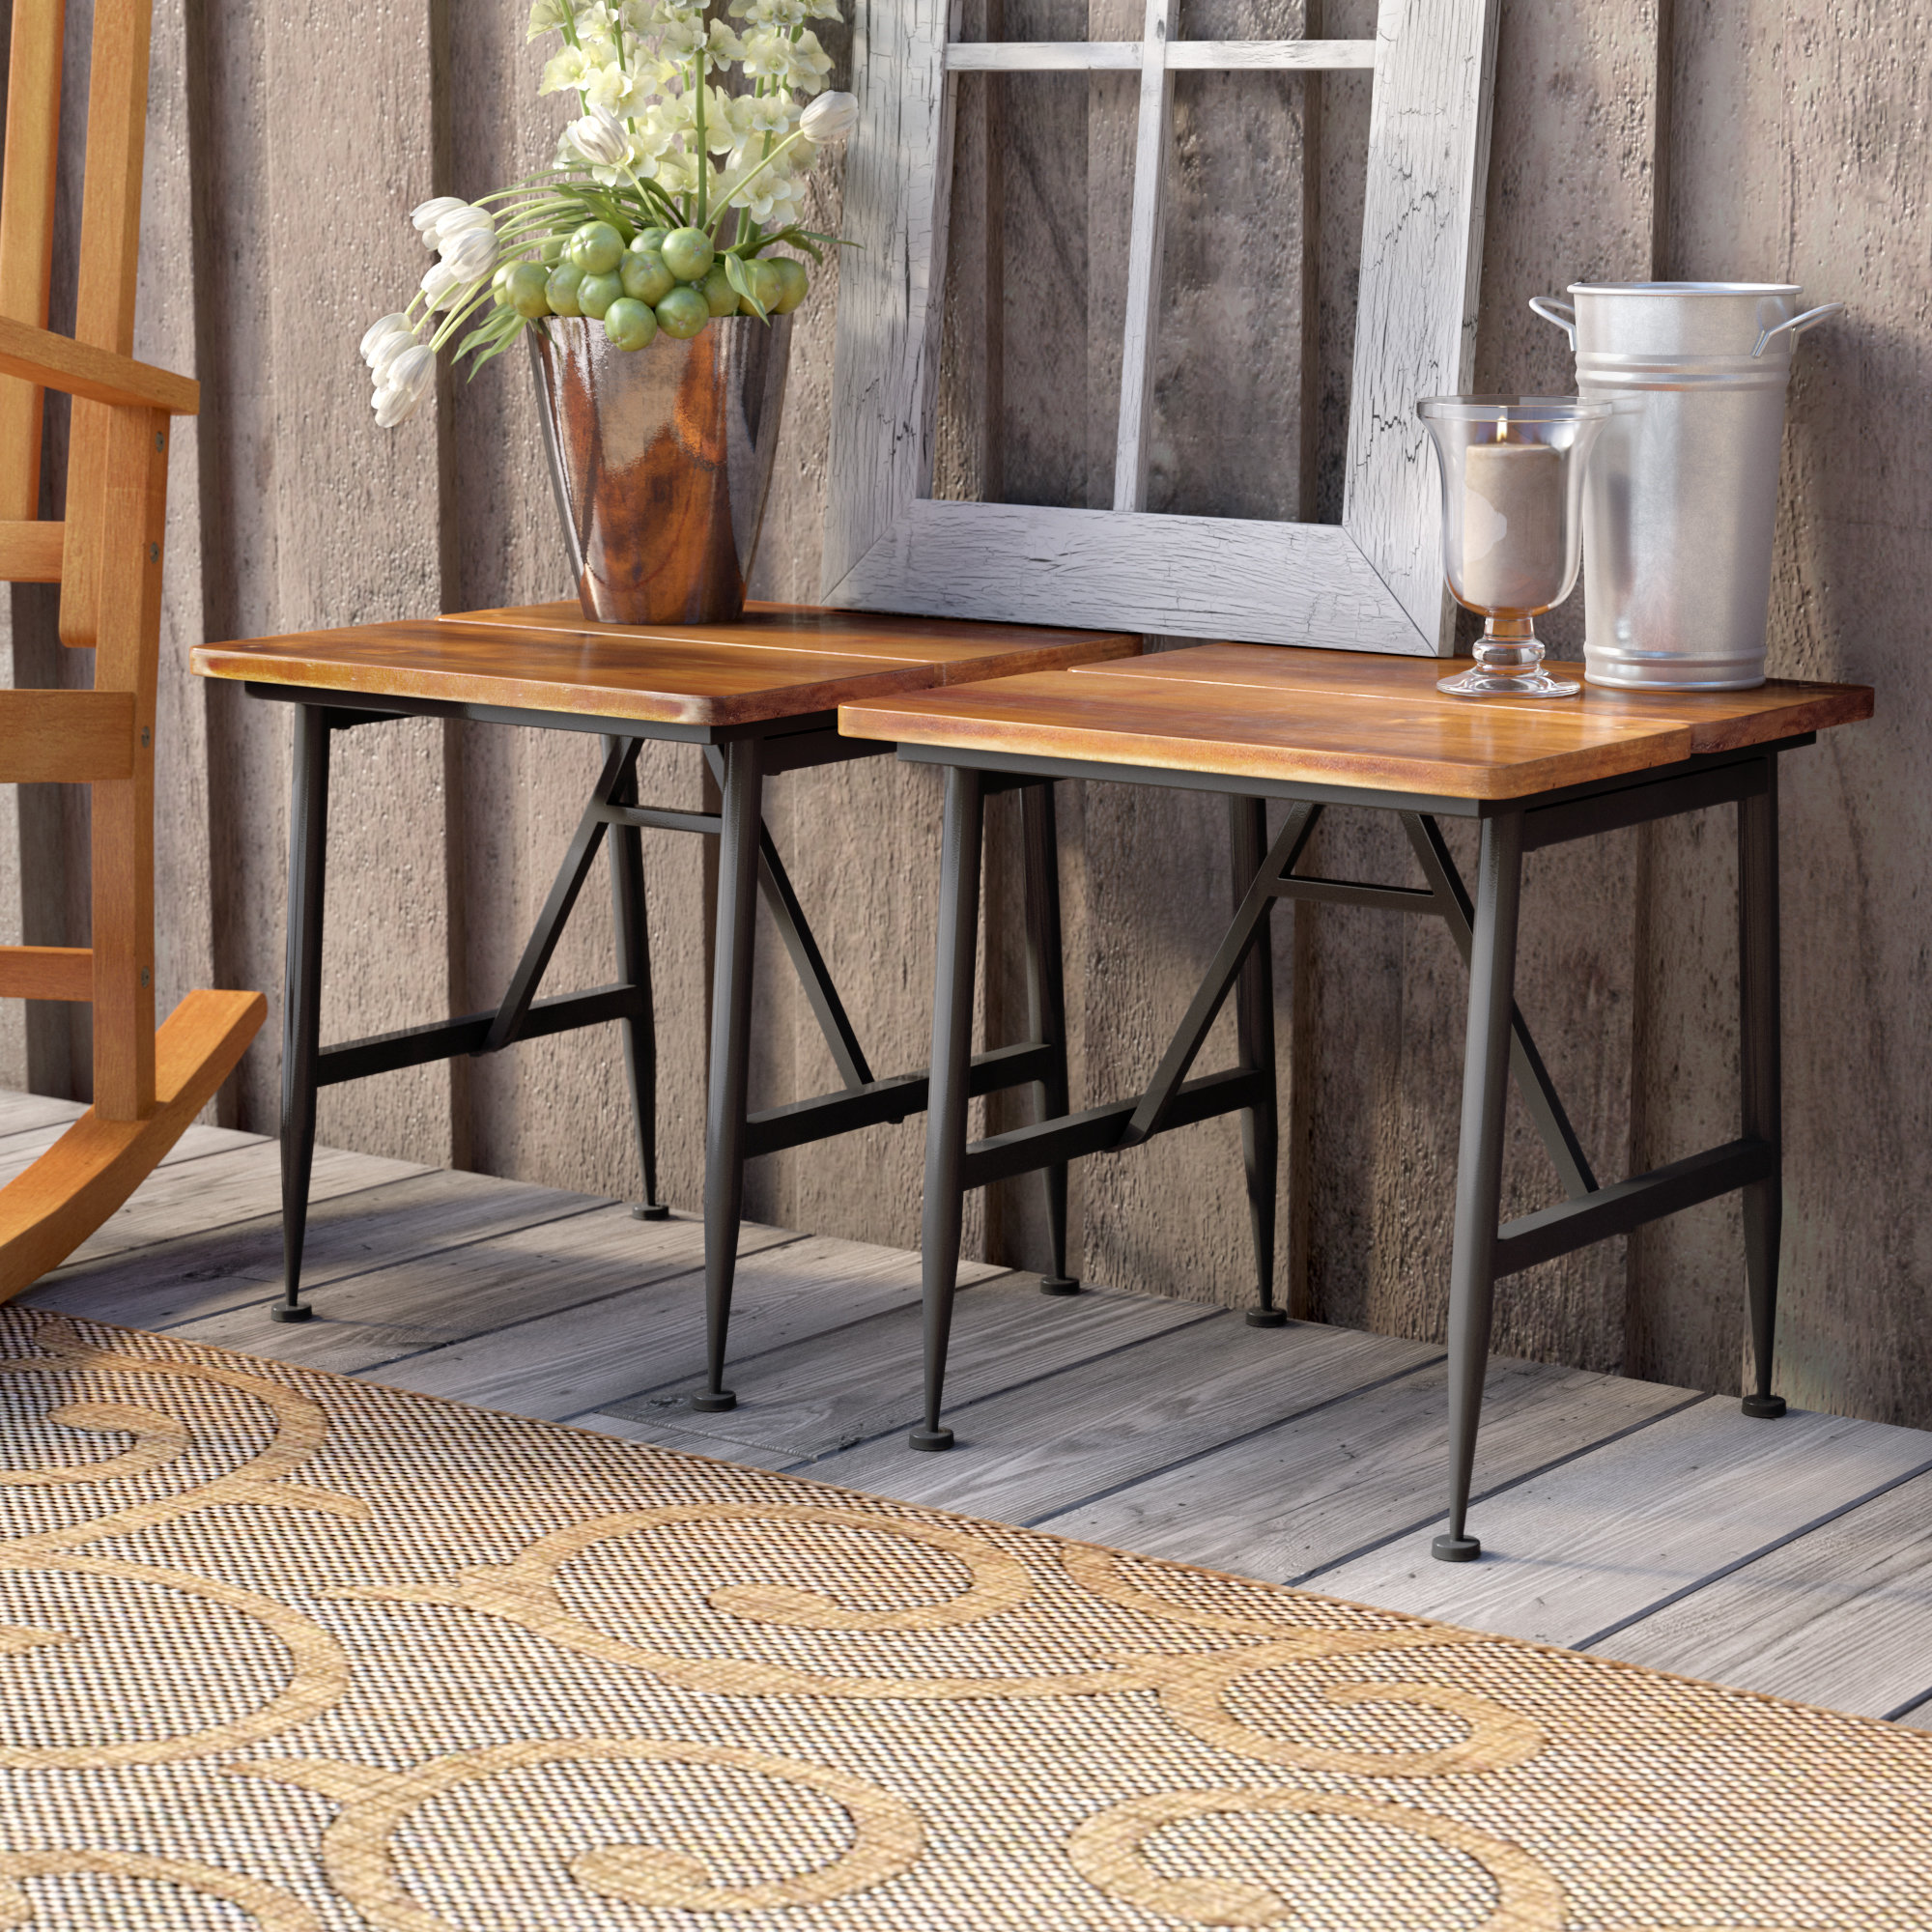 side table set frankston outdoor wood accent the eryn fretwork coffee small and chairs wicker large garden umbrellas piece pottery barn frog drum farmhouse style worktop legs what